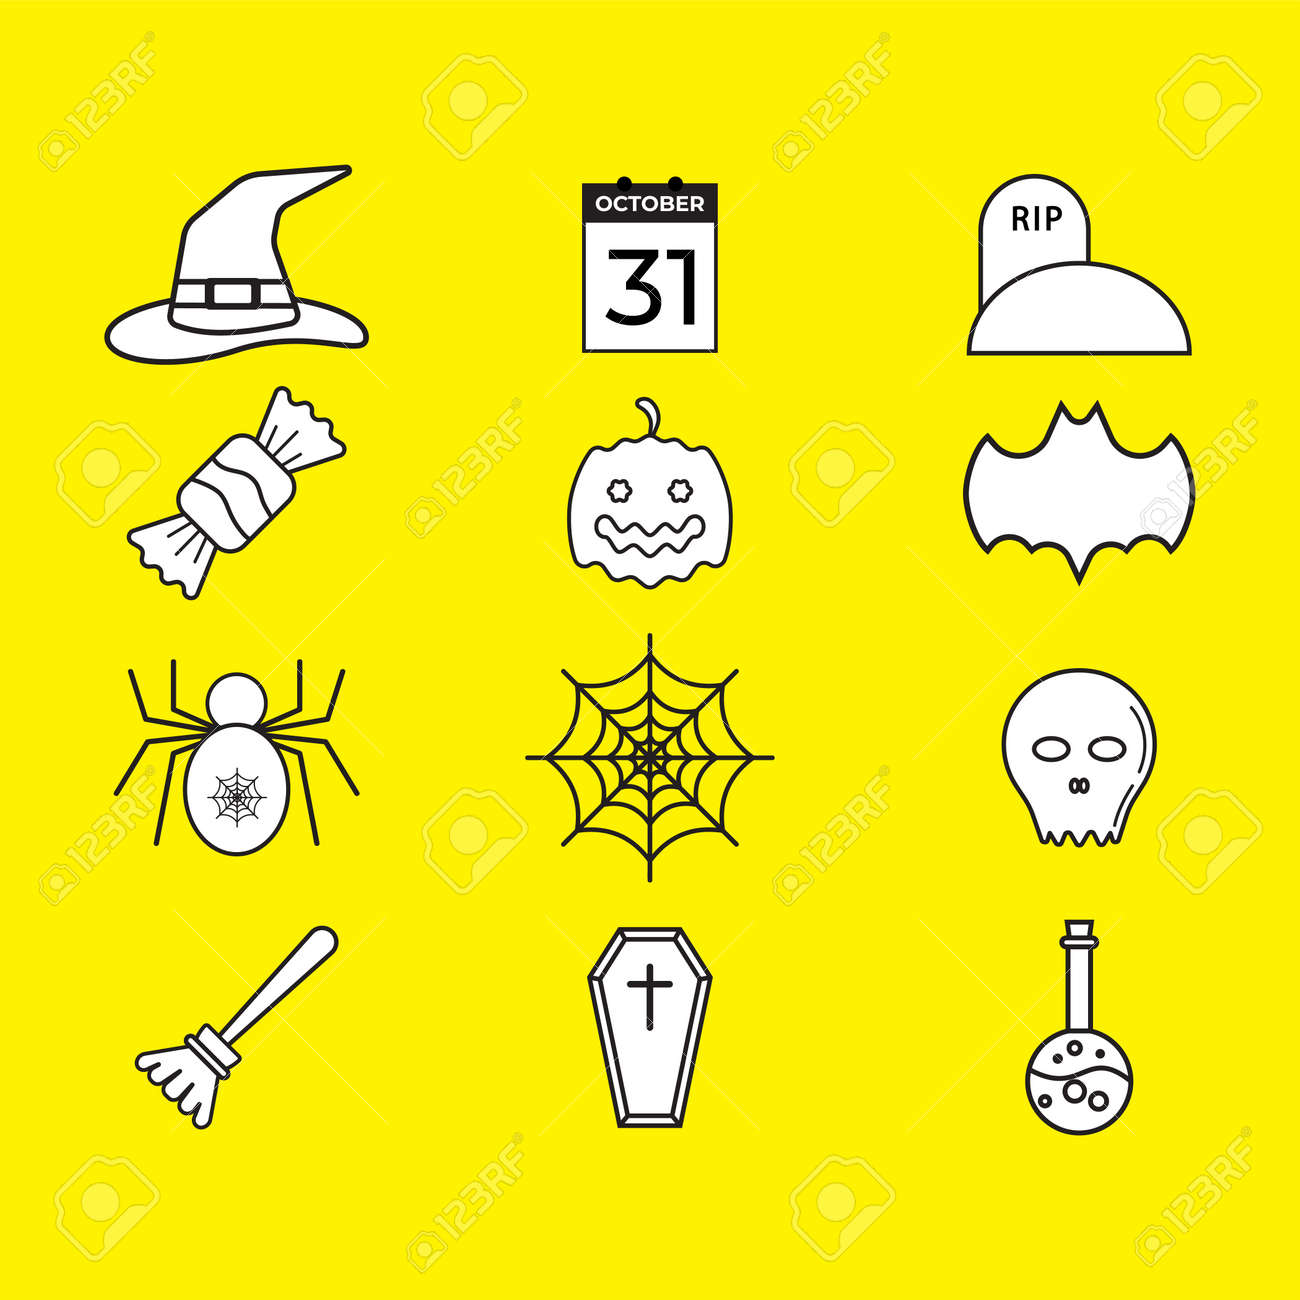 Halloween icon pack isolated on yellow color background. Uncolored vector collection. Black and white illustration design. - 155568850